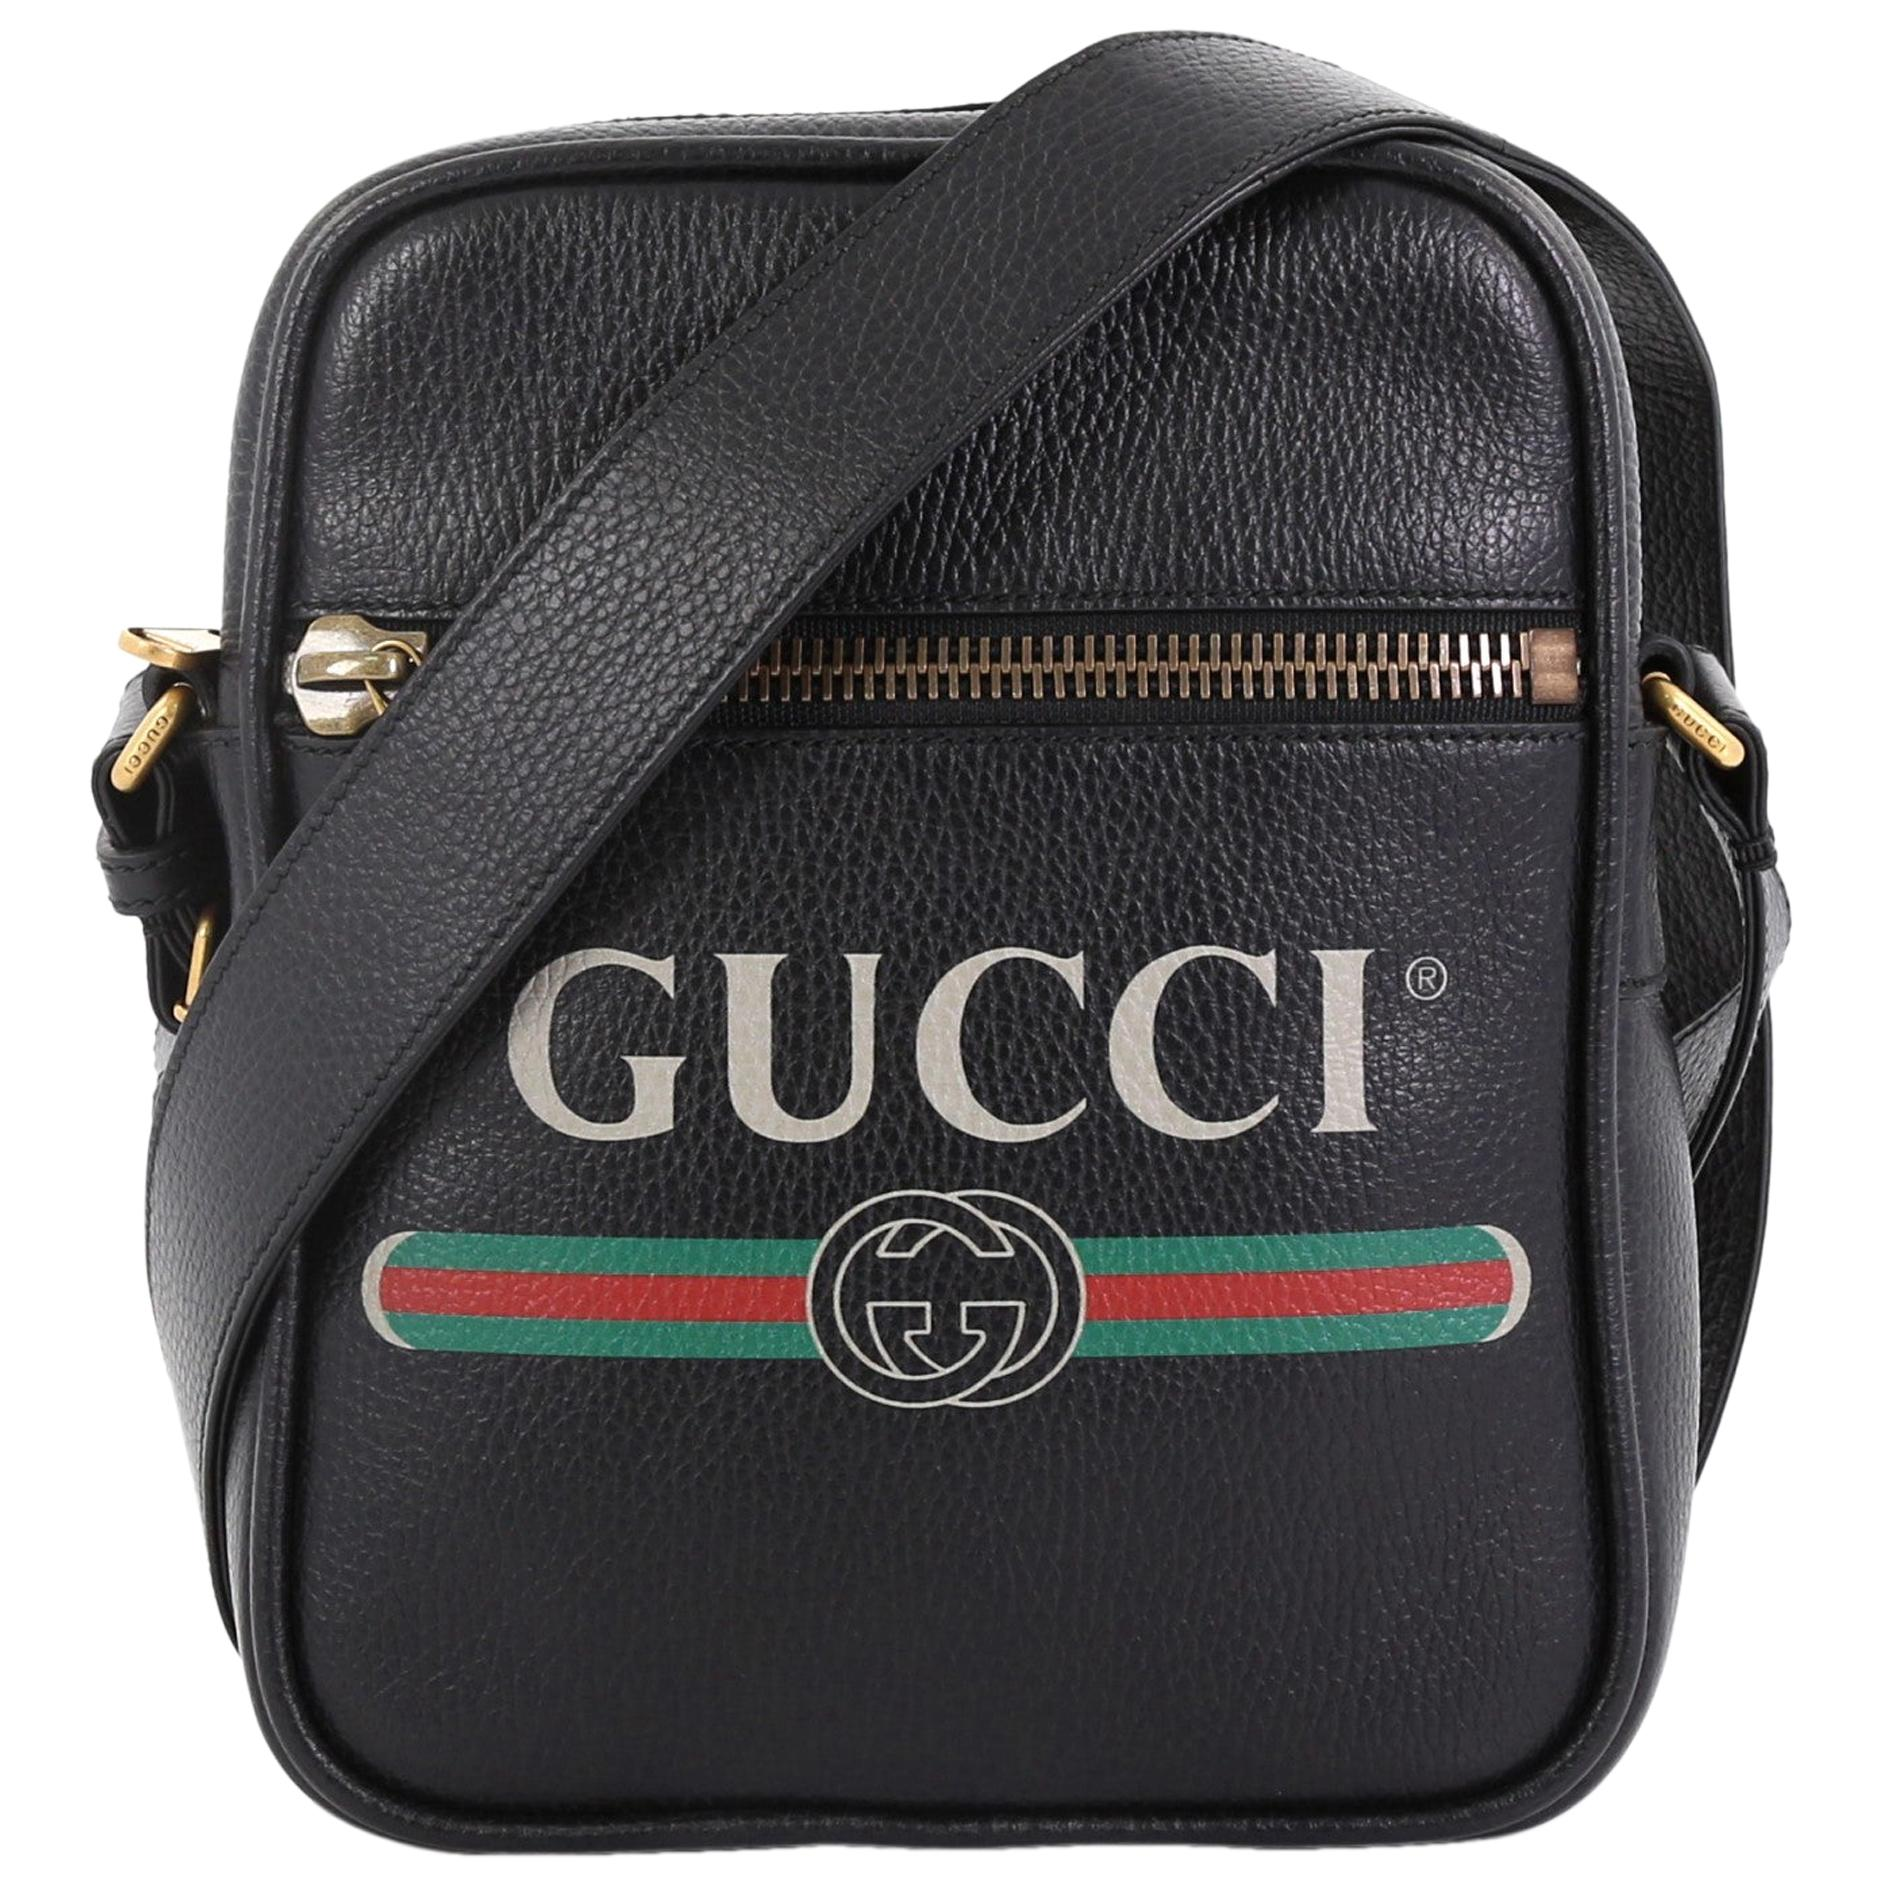 ec49a0e7b991 Gucci Logo Bags - 263 For Sale on 1stdibs